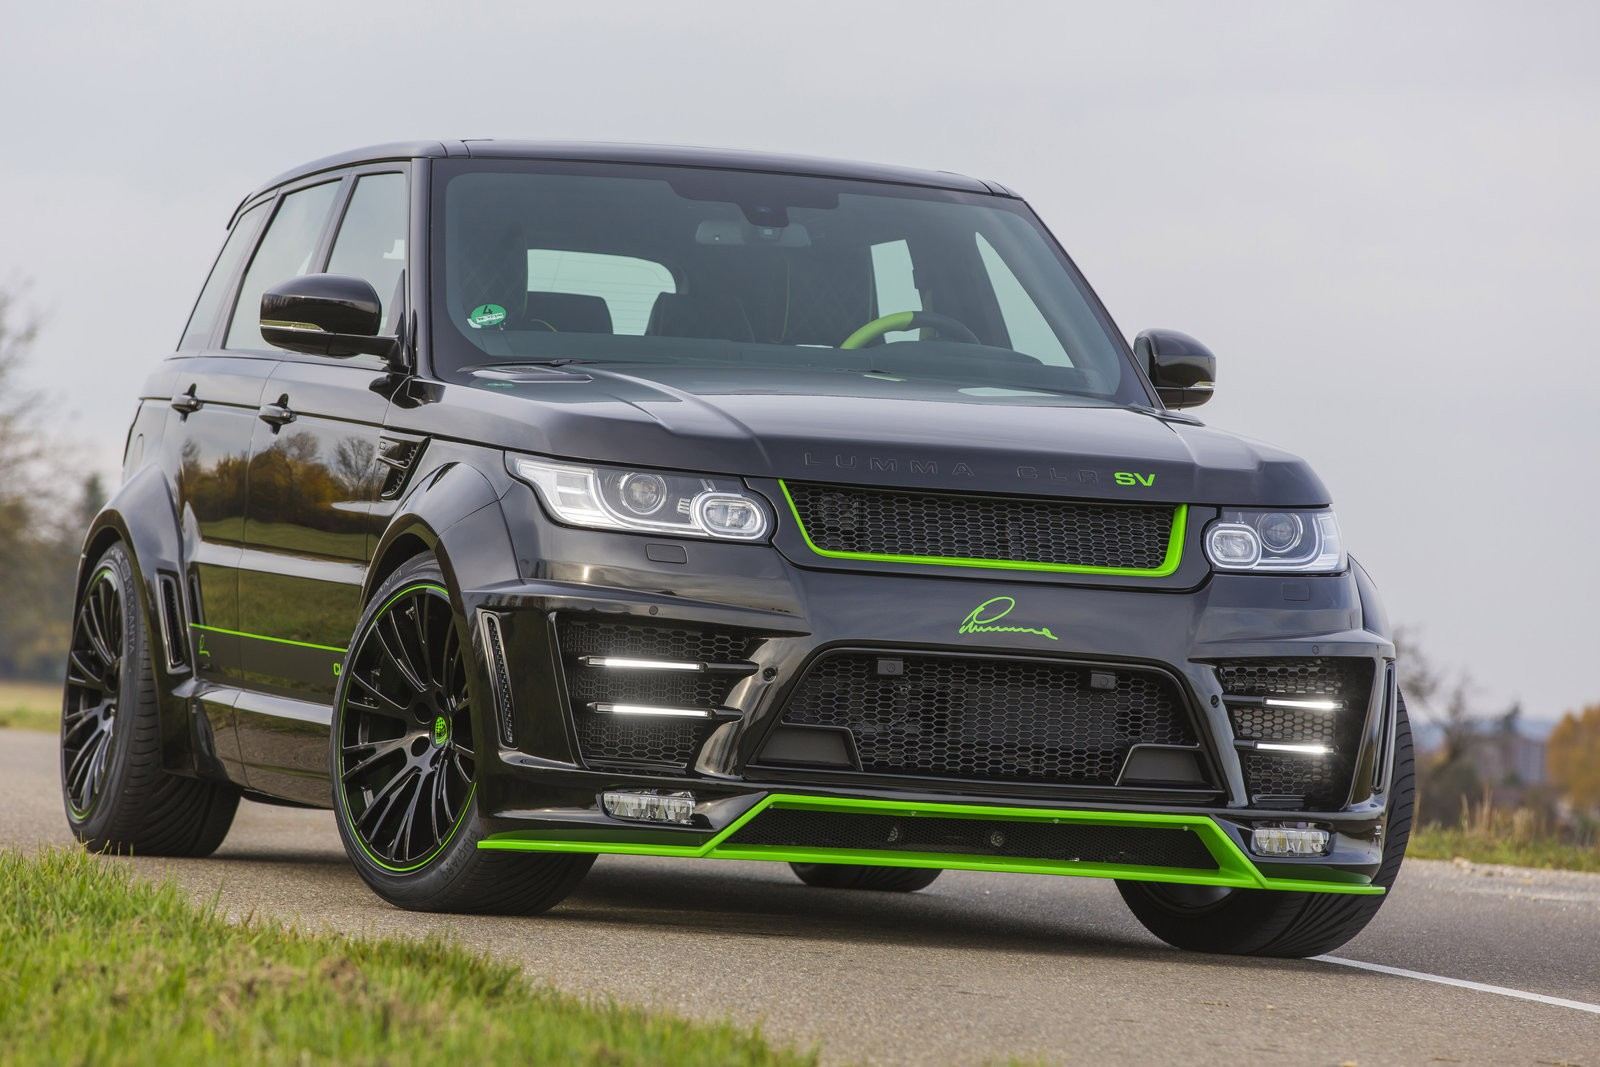 Lumma Design Clr Sv Body Kit For The Range Rover Sport